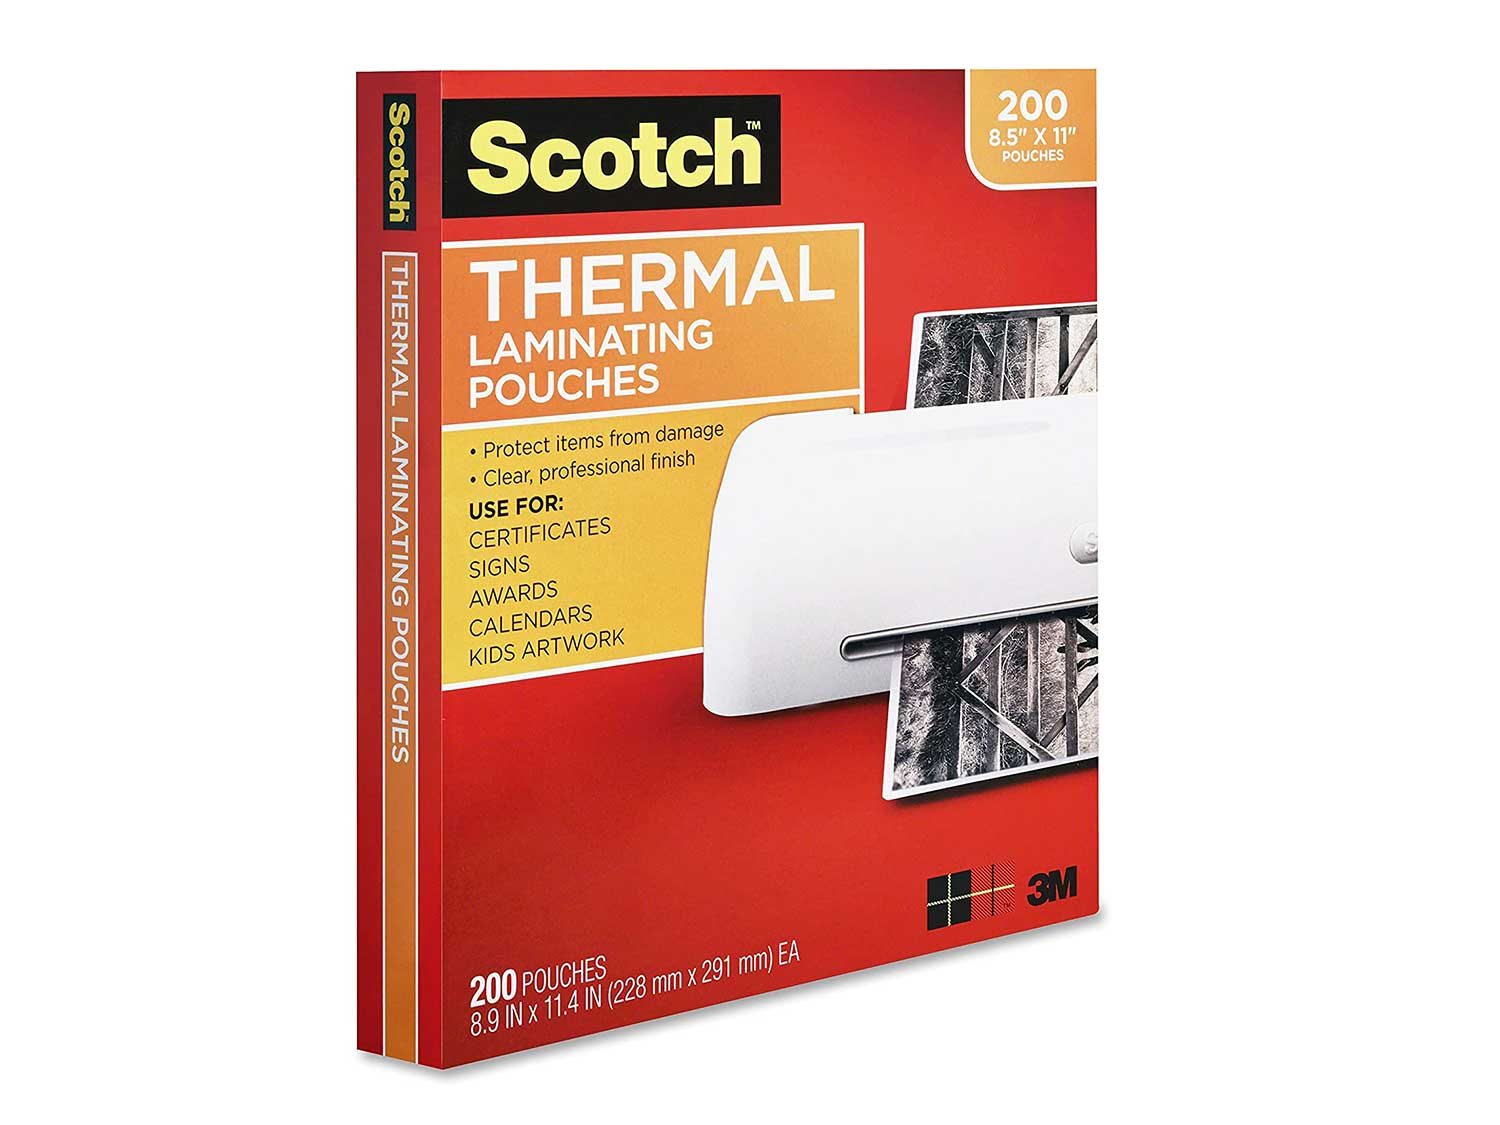 Scotch Thermal Laminating Pouches, 3 Mil thick, Durable, Clean Finish, Professional Quality, 8.9 x 11.4 Inches, Letter Size Sheets, 200-Pack, Clear (TP3854-200)